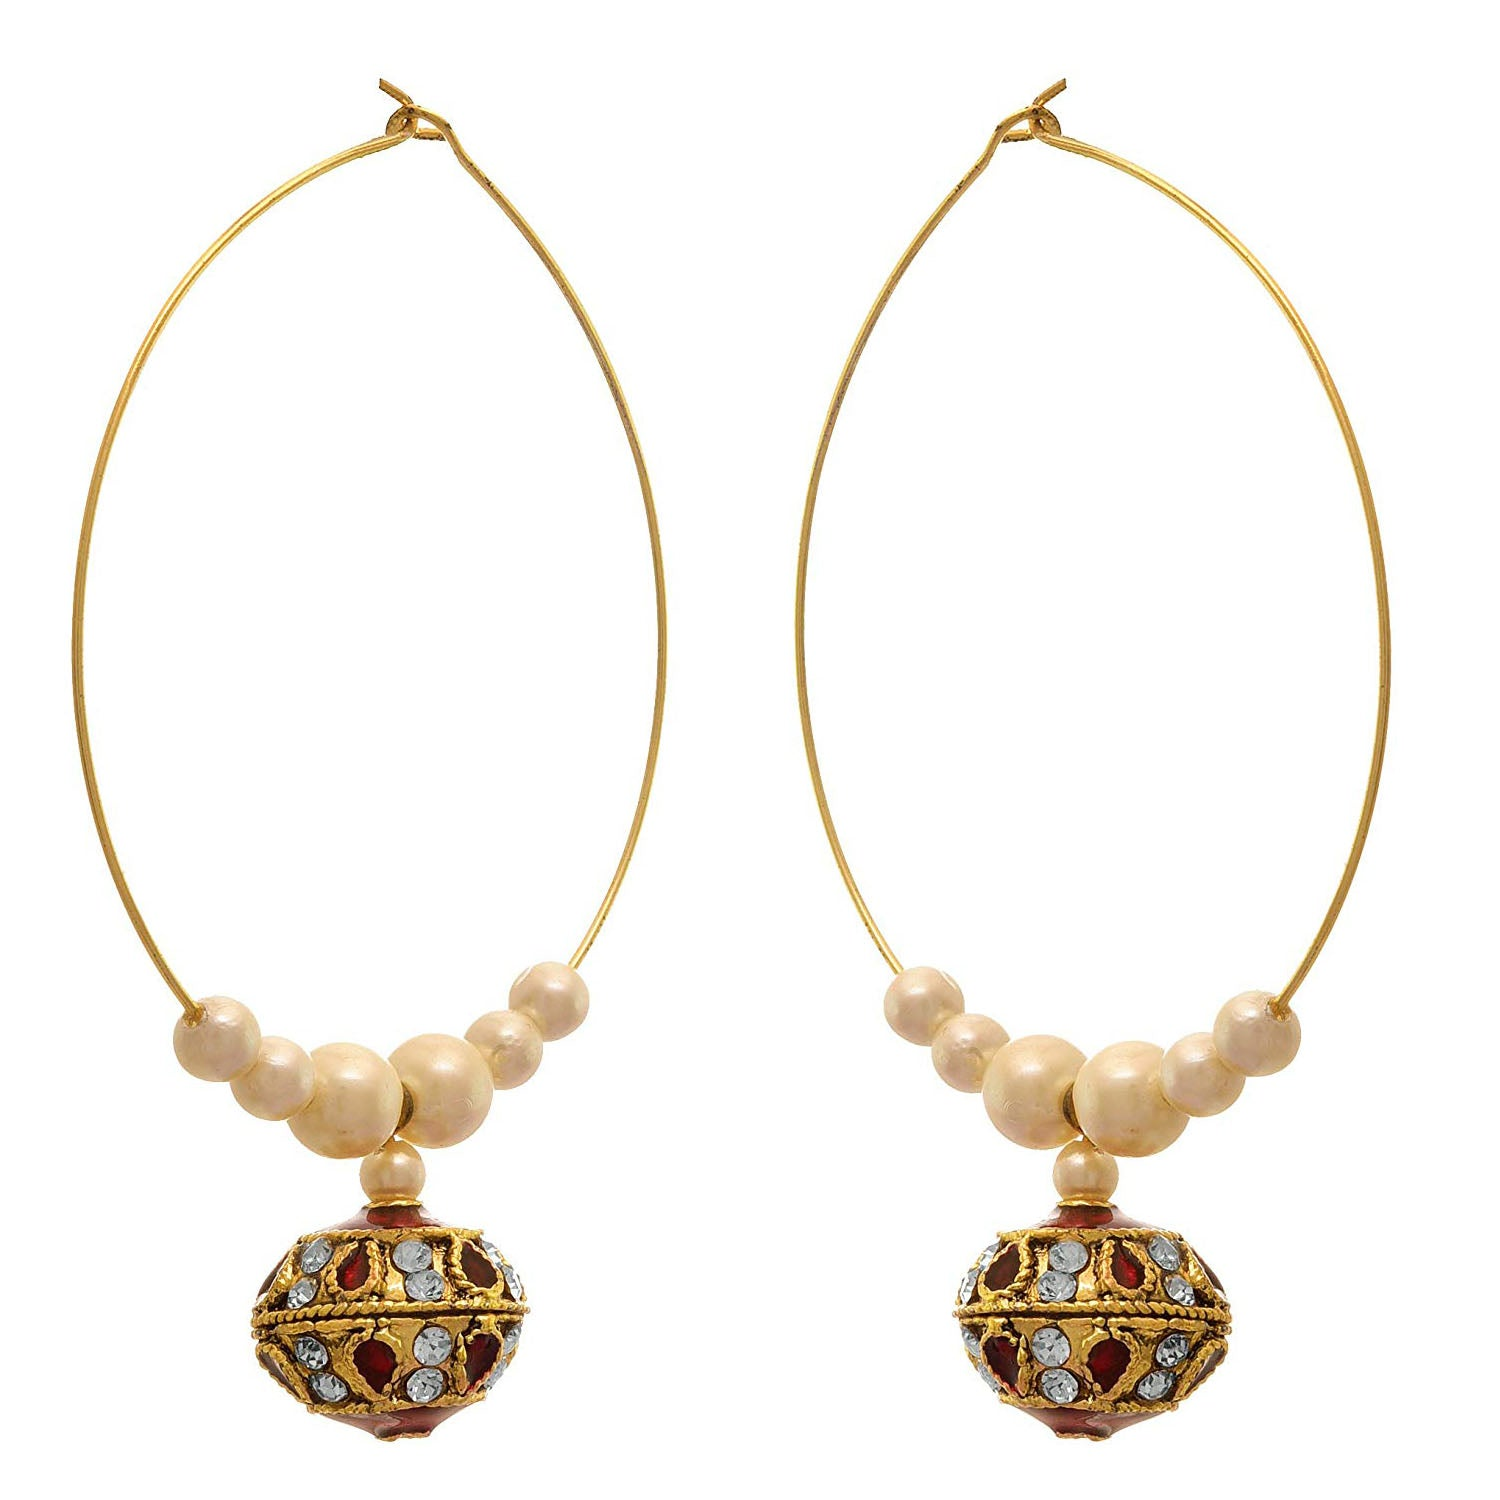 JFL - Traditional Ethnic One Gram Gold Plated Designer Bali Earring For Women & Girls.